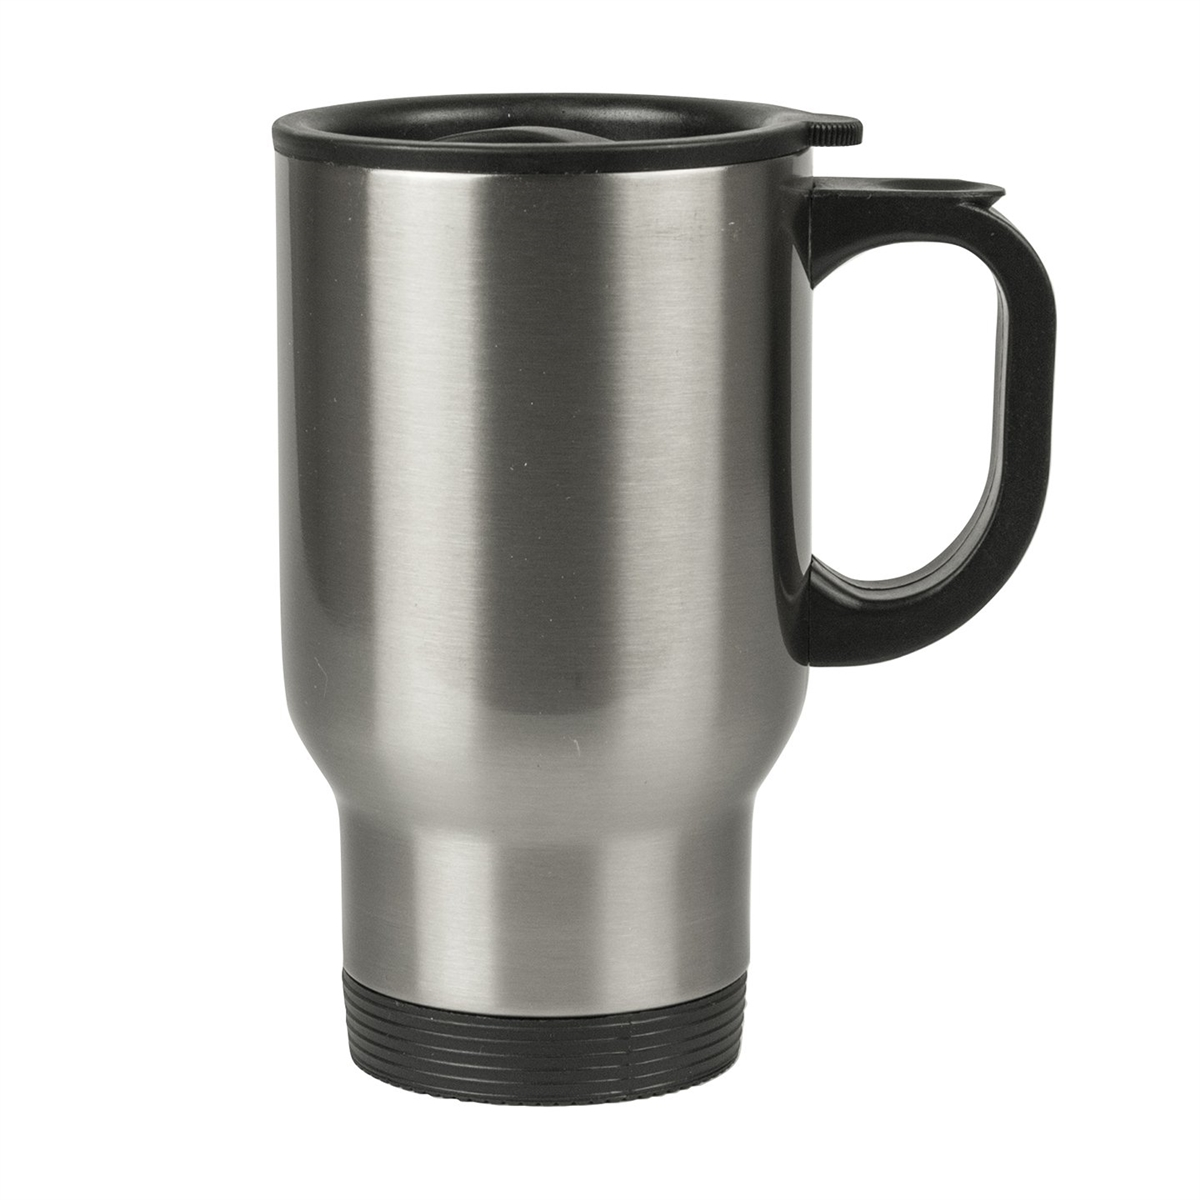 14 Oz Stainless Steel Travel Mug Silver